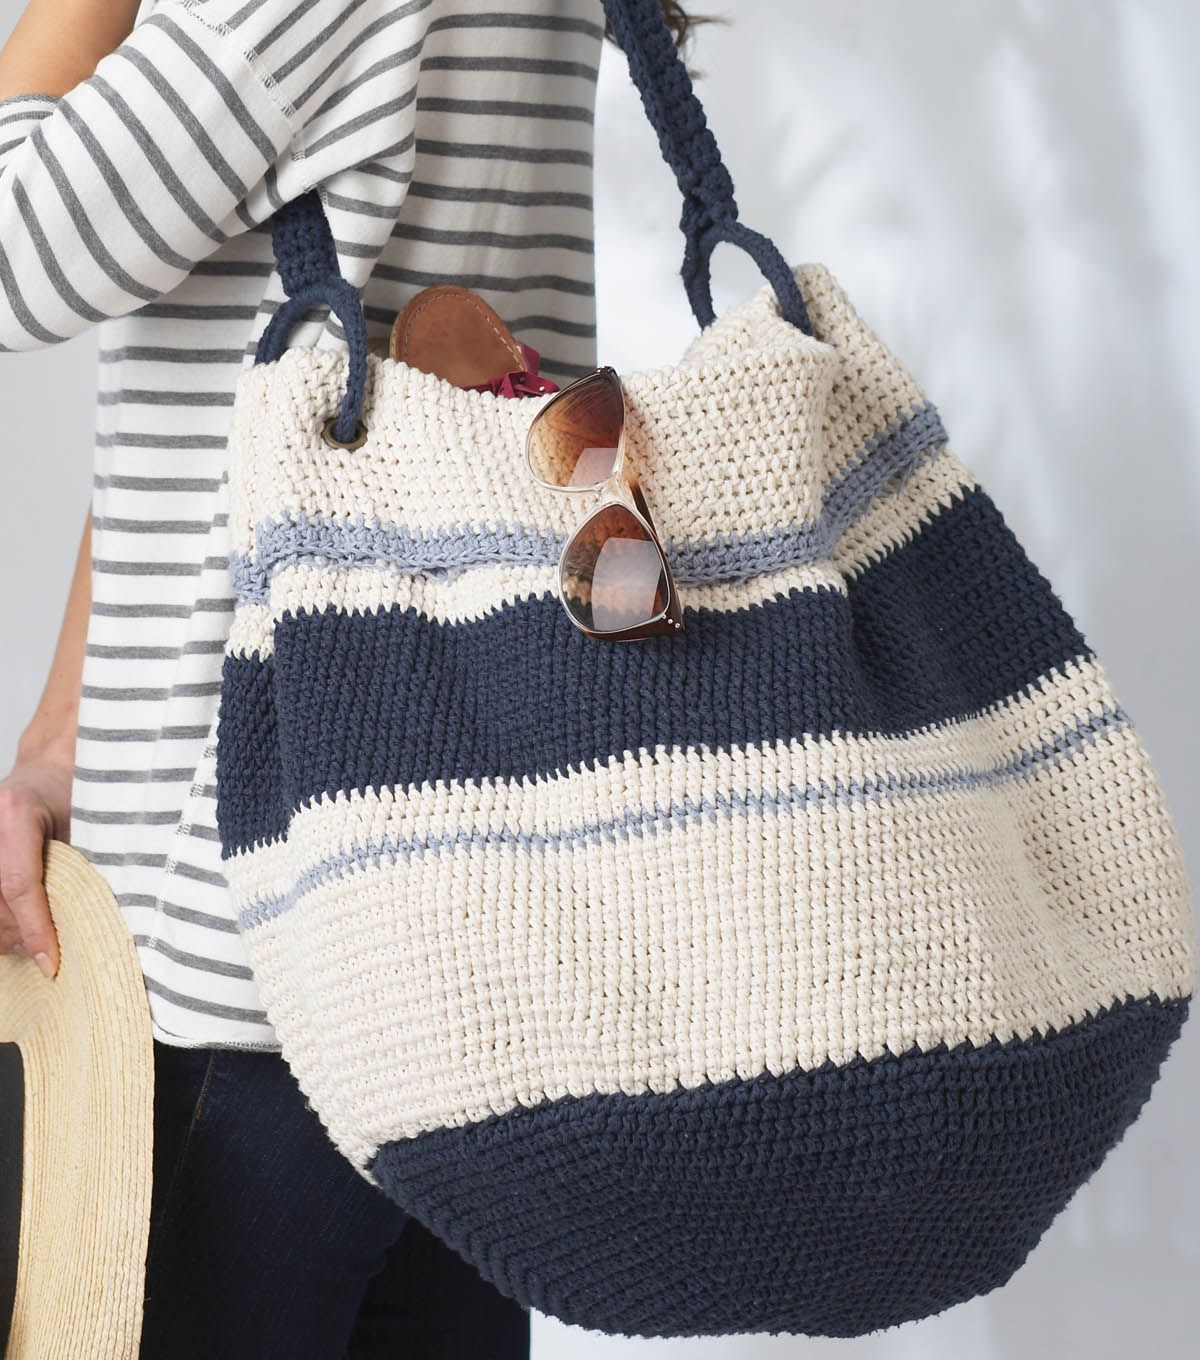 Nautical Hobo Bag - Free Crochet Pattern - (joann) | Knitting and ...